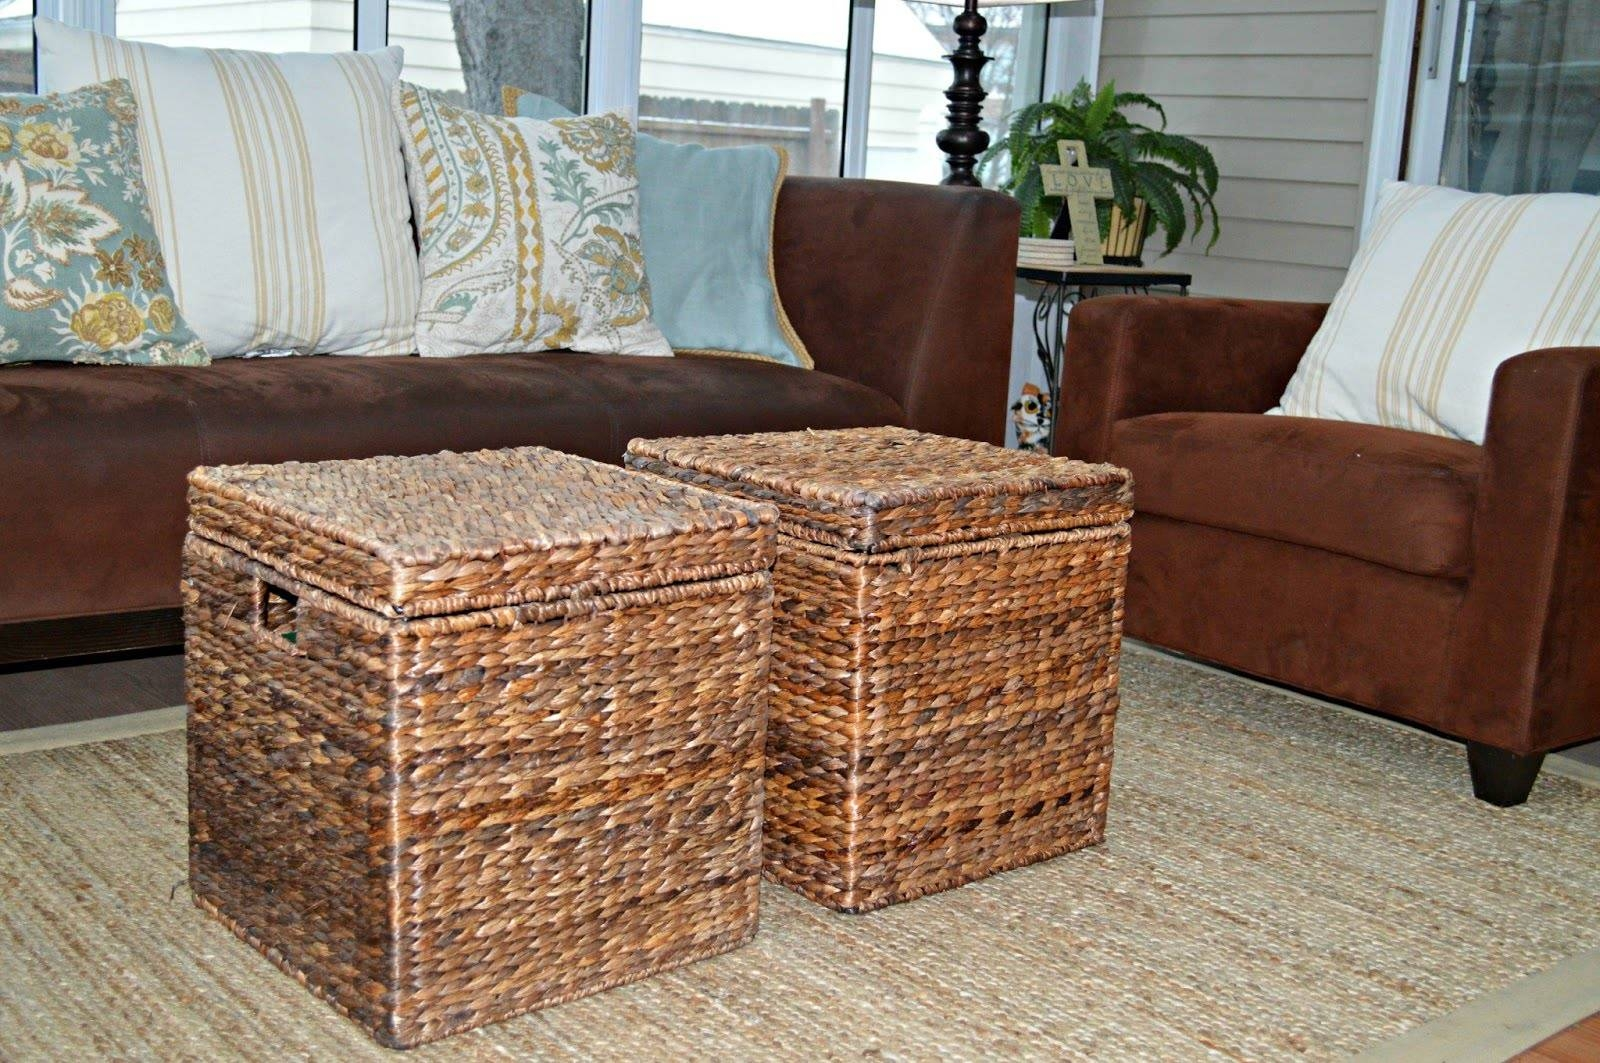 Coffee Table With Storage | Coffee Table With Basket Storage within Coffee Tables With Basket Storage Underneath (Image 8 of 30)